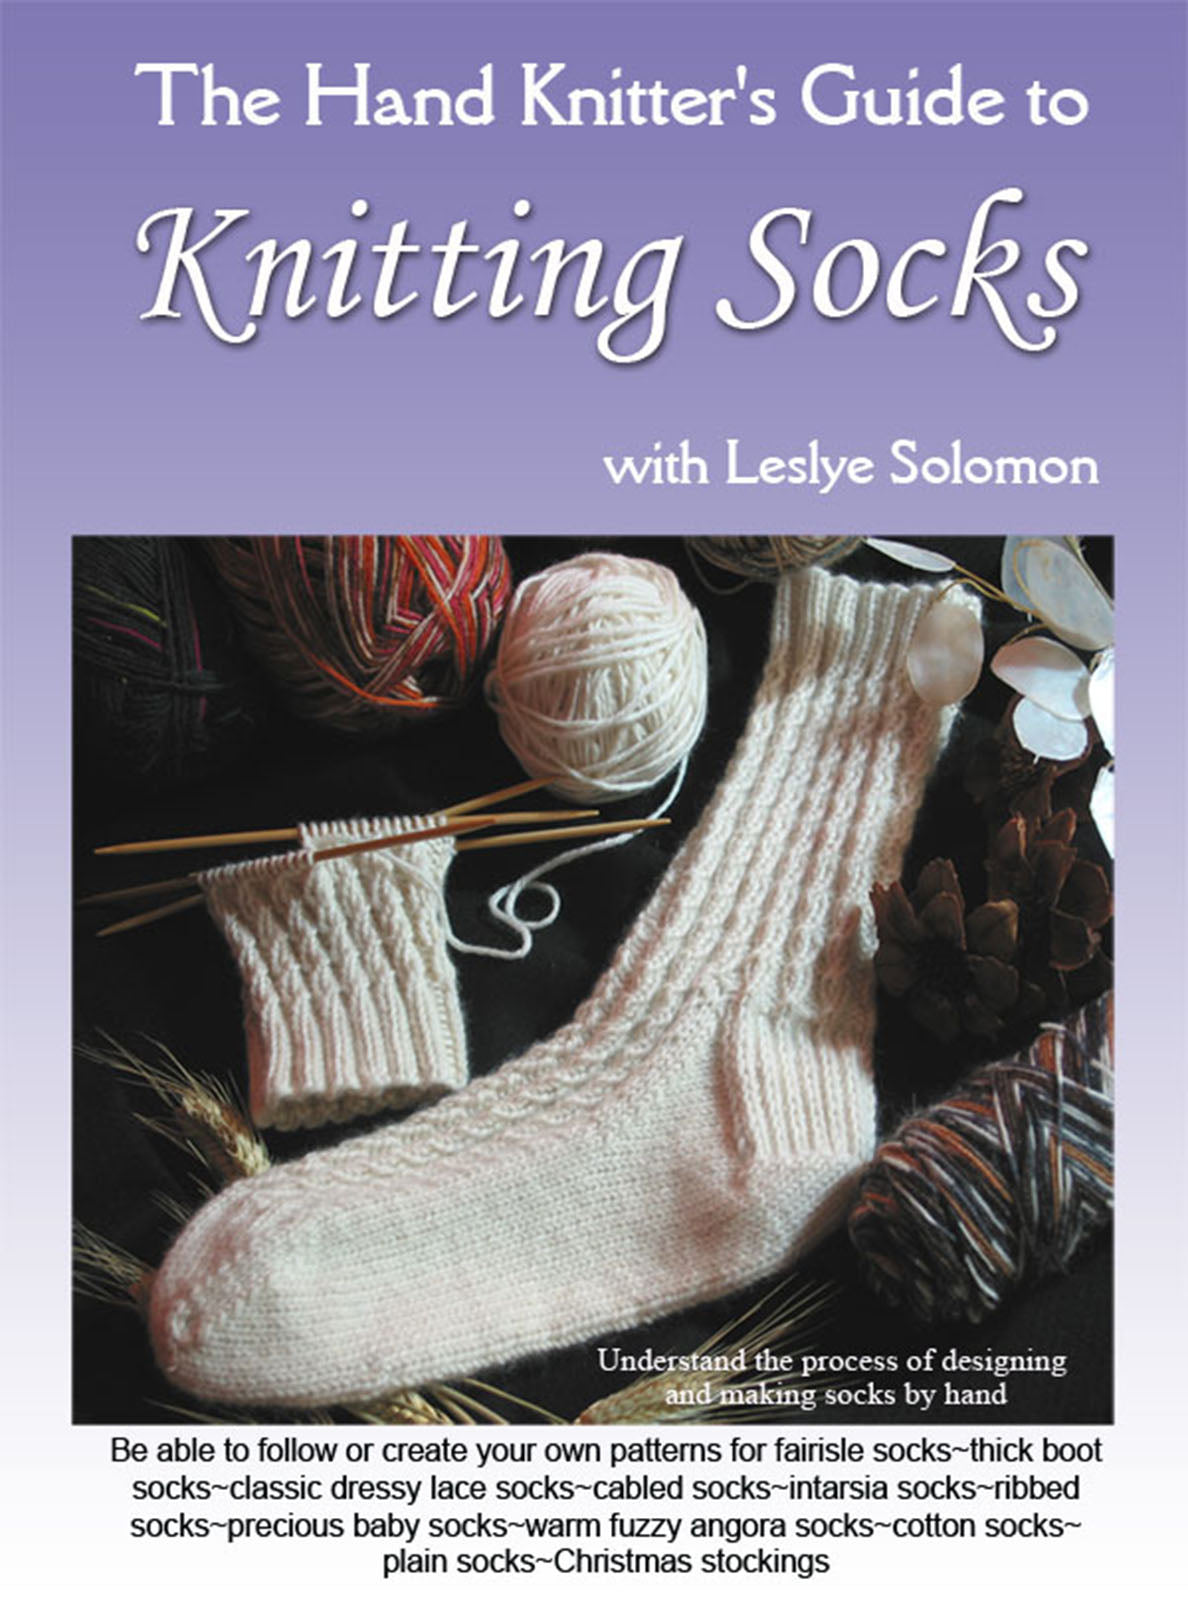 The Hand Knitter's Guide to Knitting Socks DVD by Leslye Solomon